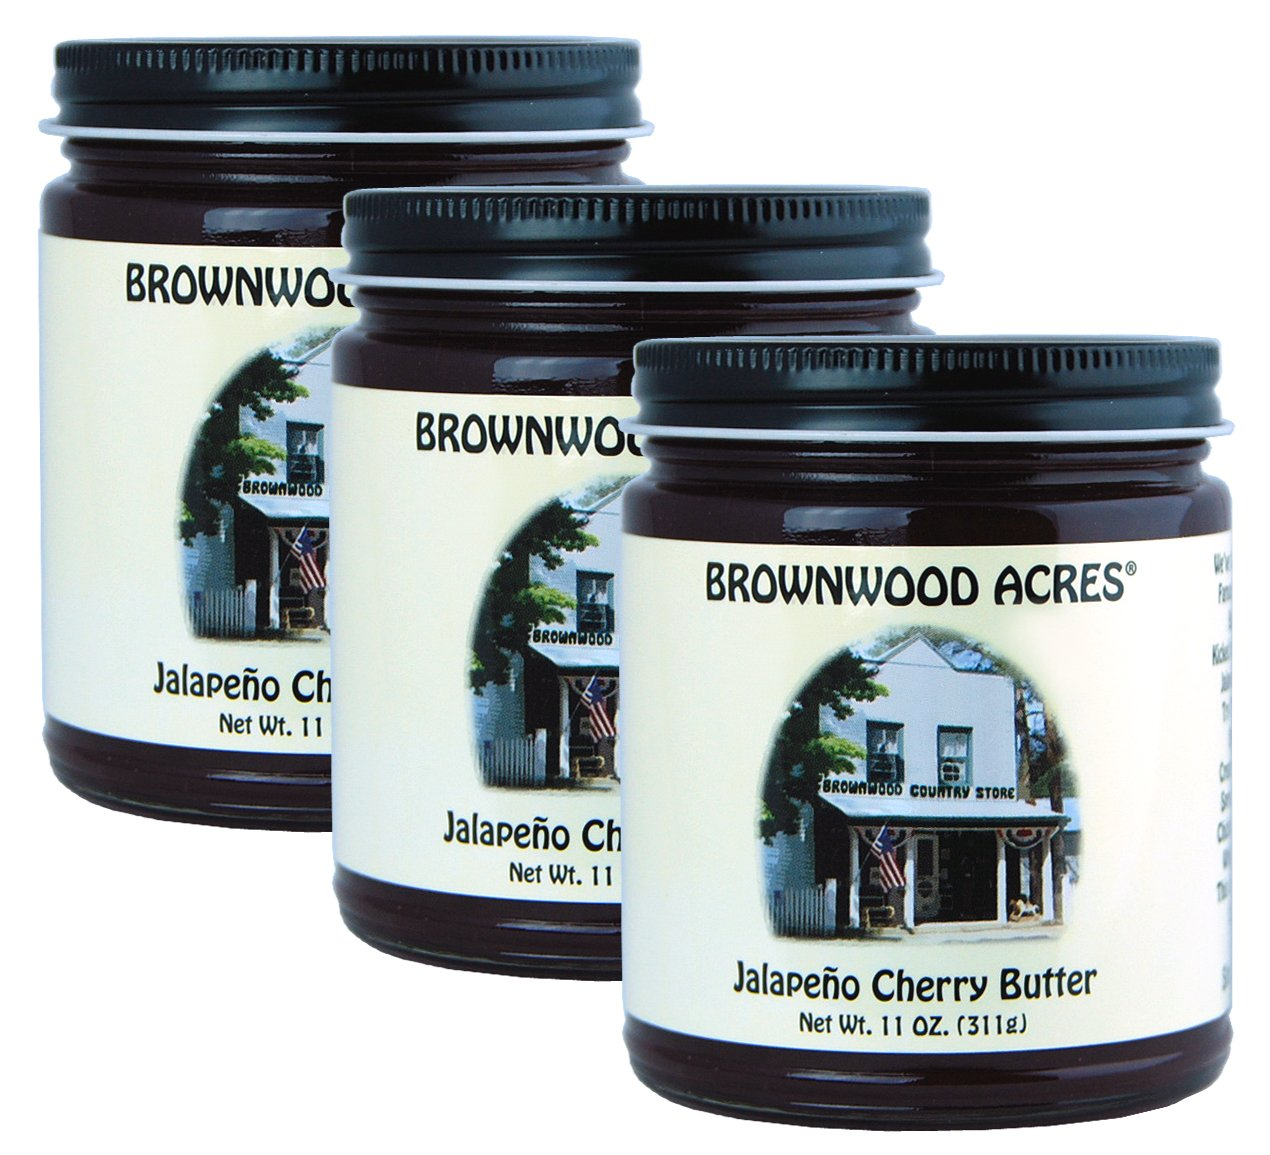 Brownwood Acres Jalapeno Cherry Butter - 3 PACK - Shipping Included by Brownwood Acres